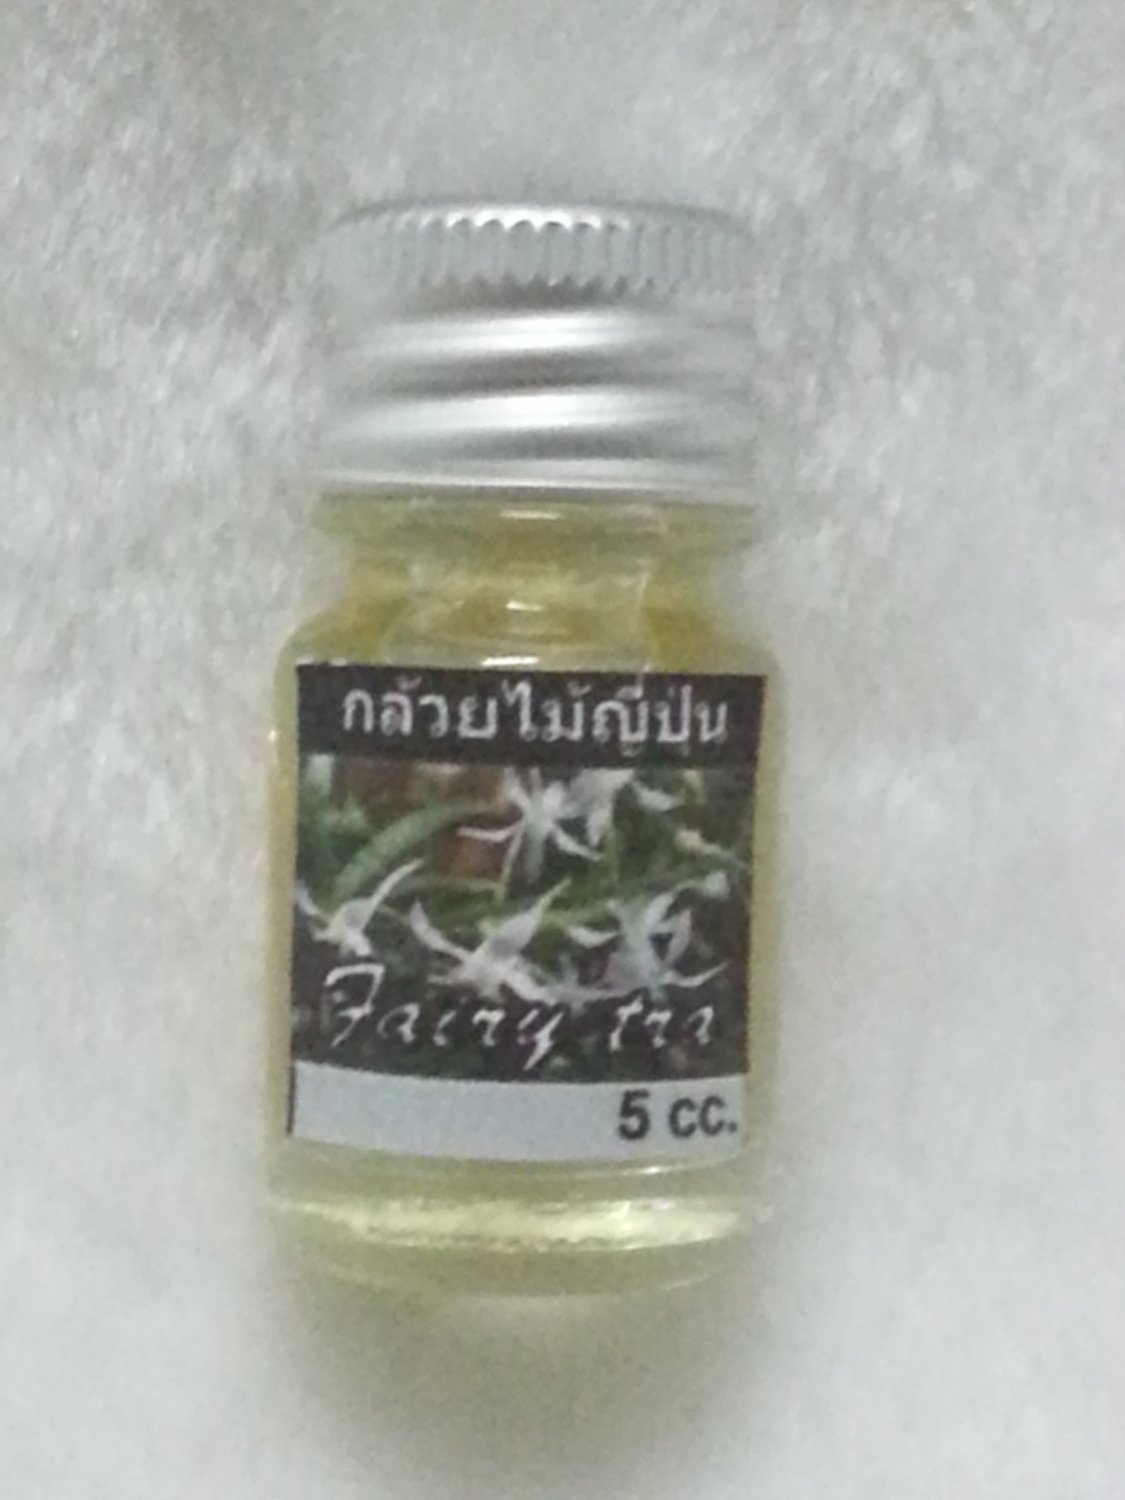 Japanese Orchid Flower Scent Thai Spa Aroma Pure Essential / Fragrance Oil for Spa Bath, Candle Lamp Burner, 5ml